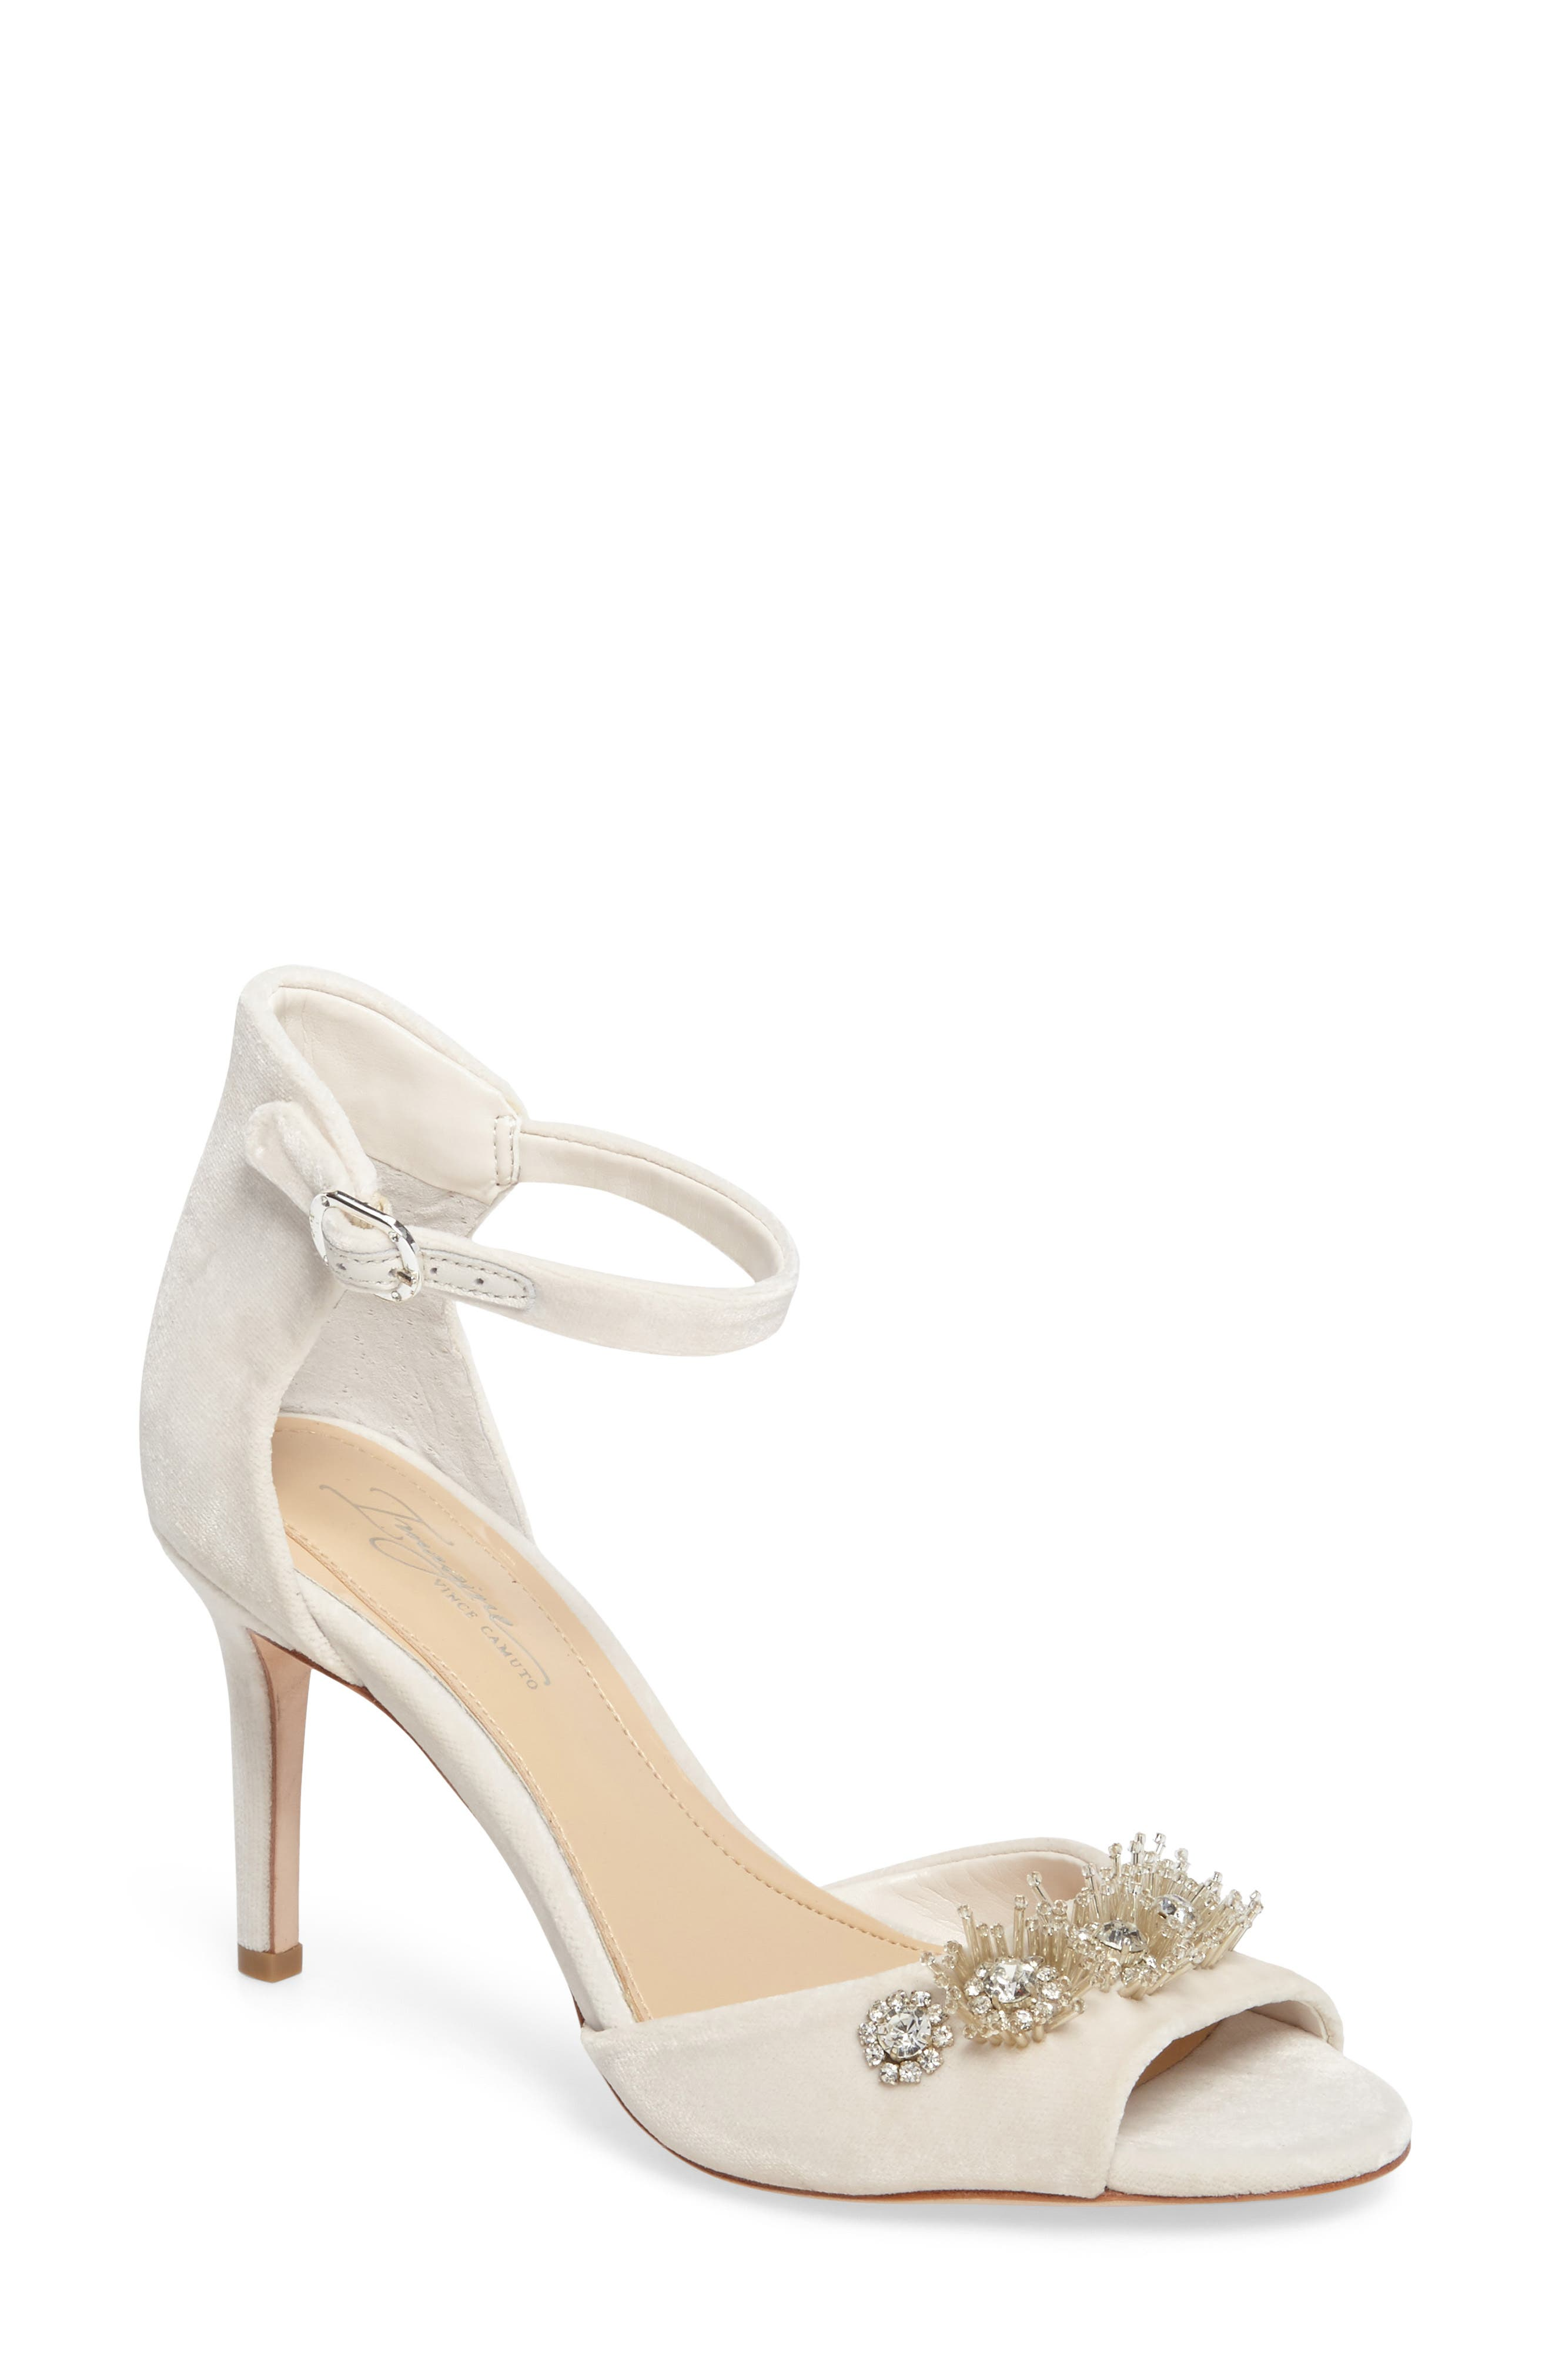 Imagine by Vince Camuto Prisca Embellished Sandal (Women)